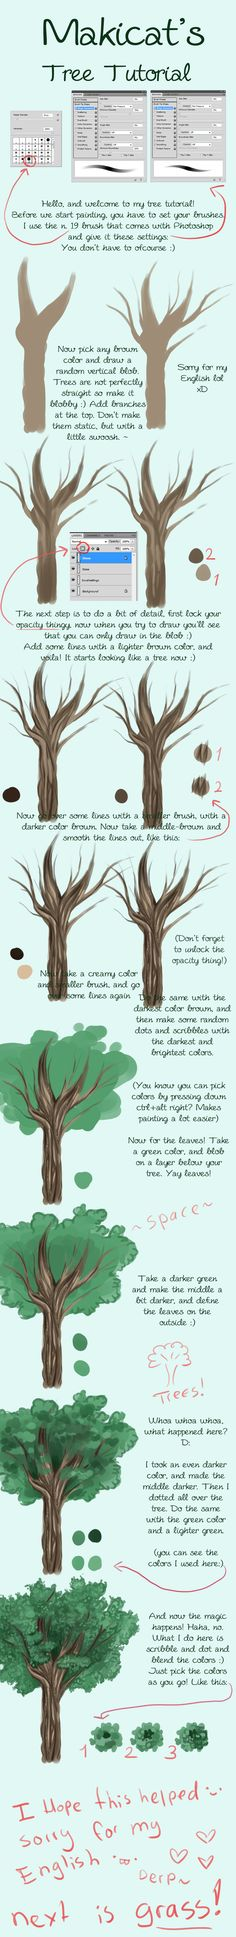 How to draw trees! don't know if I'll ever try this but it looked interesting enough to save.